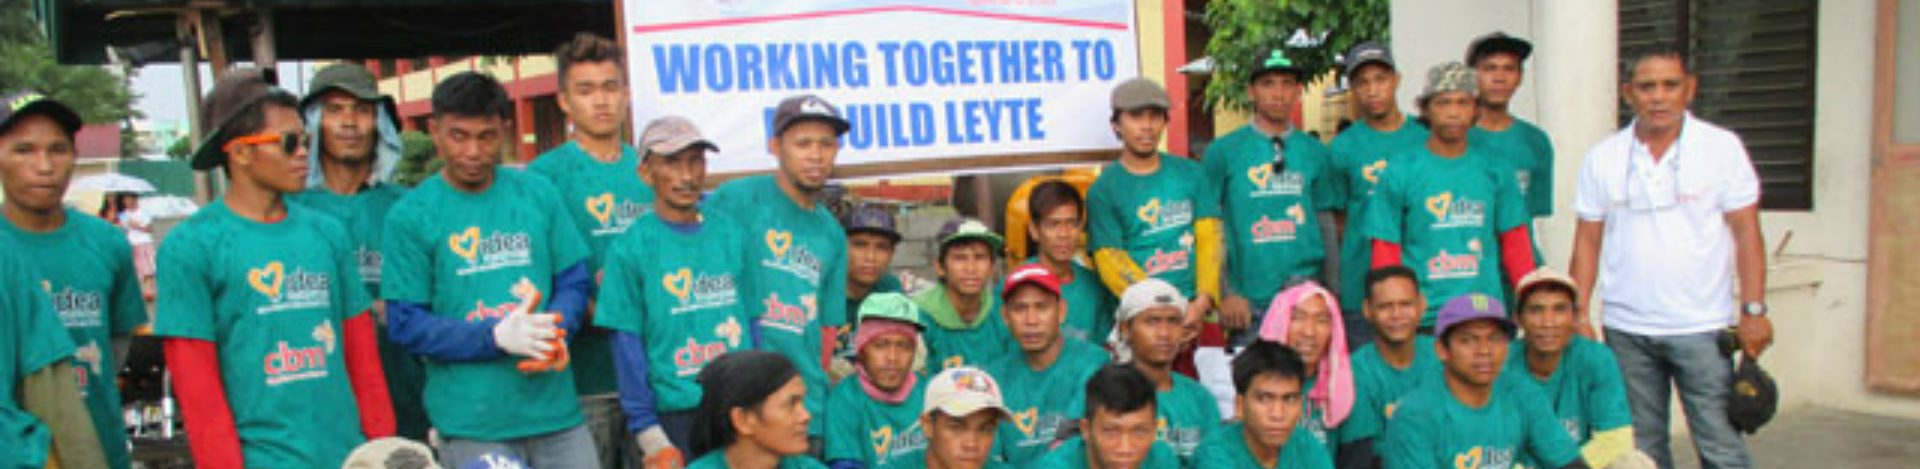 CBM's response team standing together in Philippines following philippines typhoon.